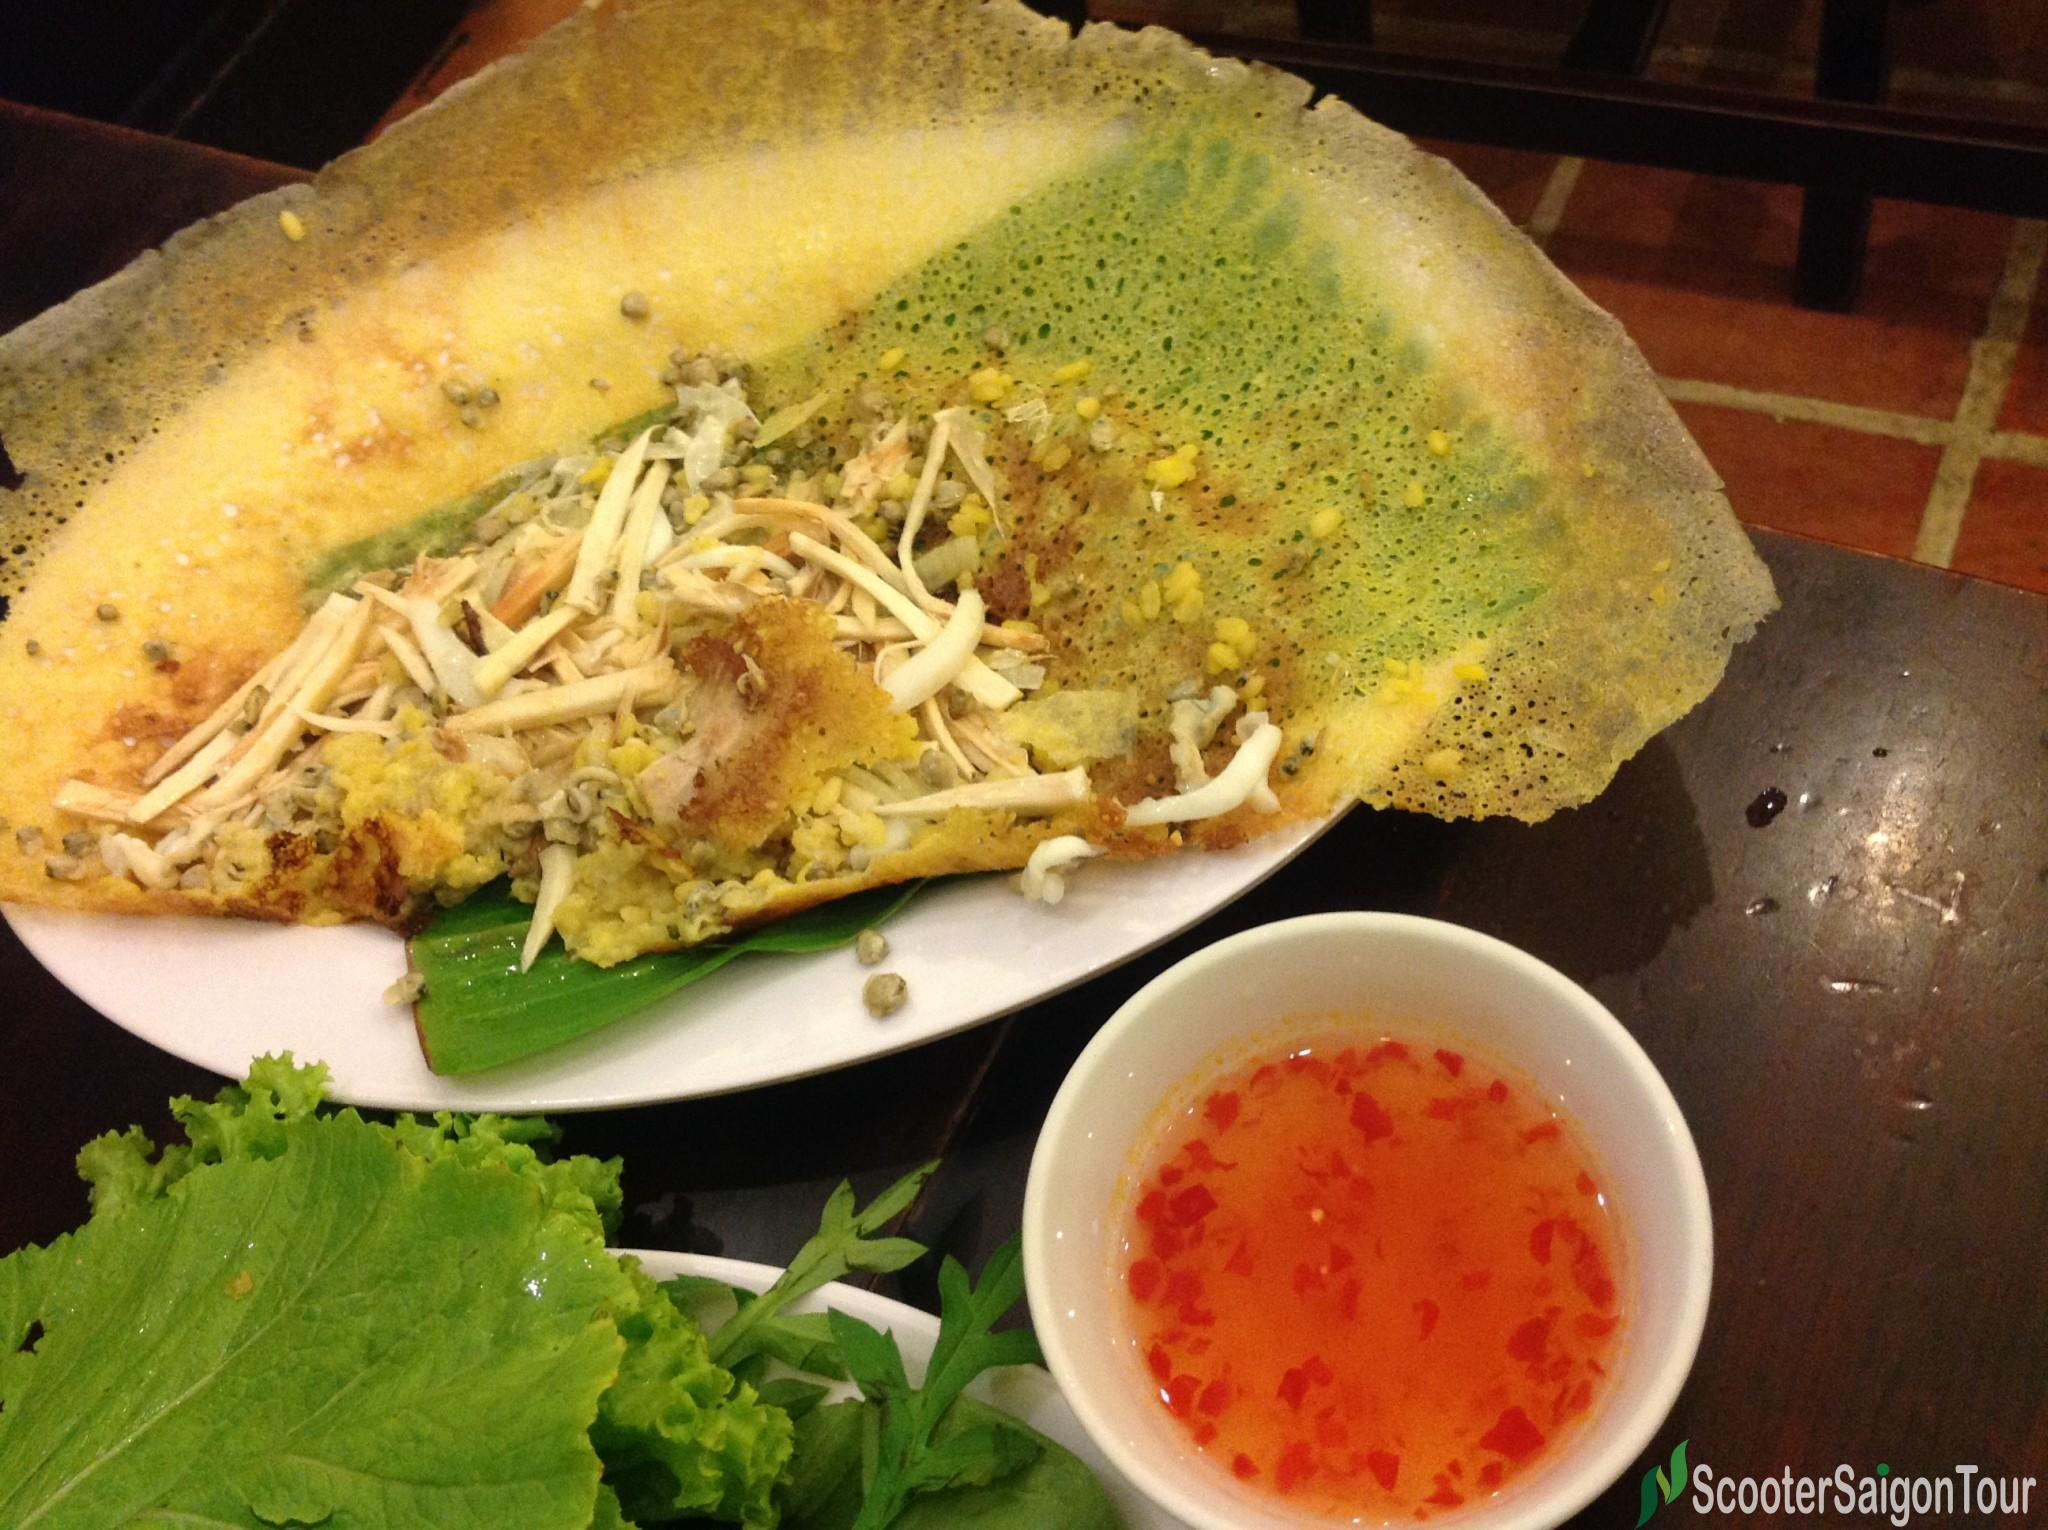 the filling of vietnamese pancake at co ba vung tau tracy do